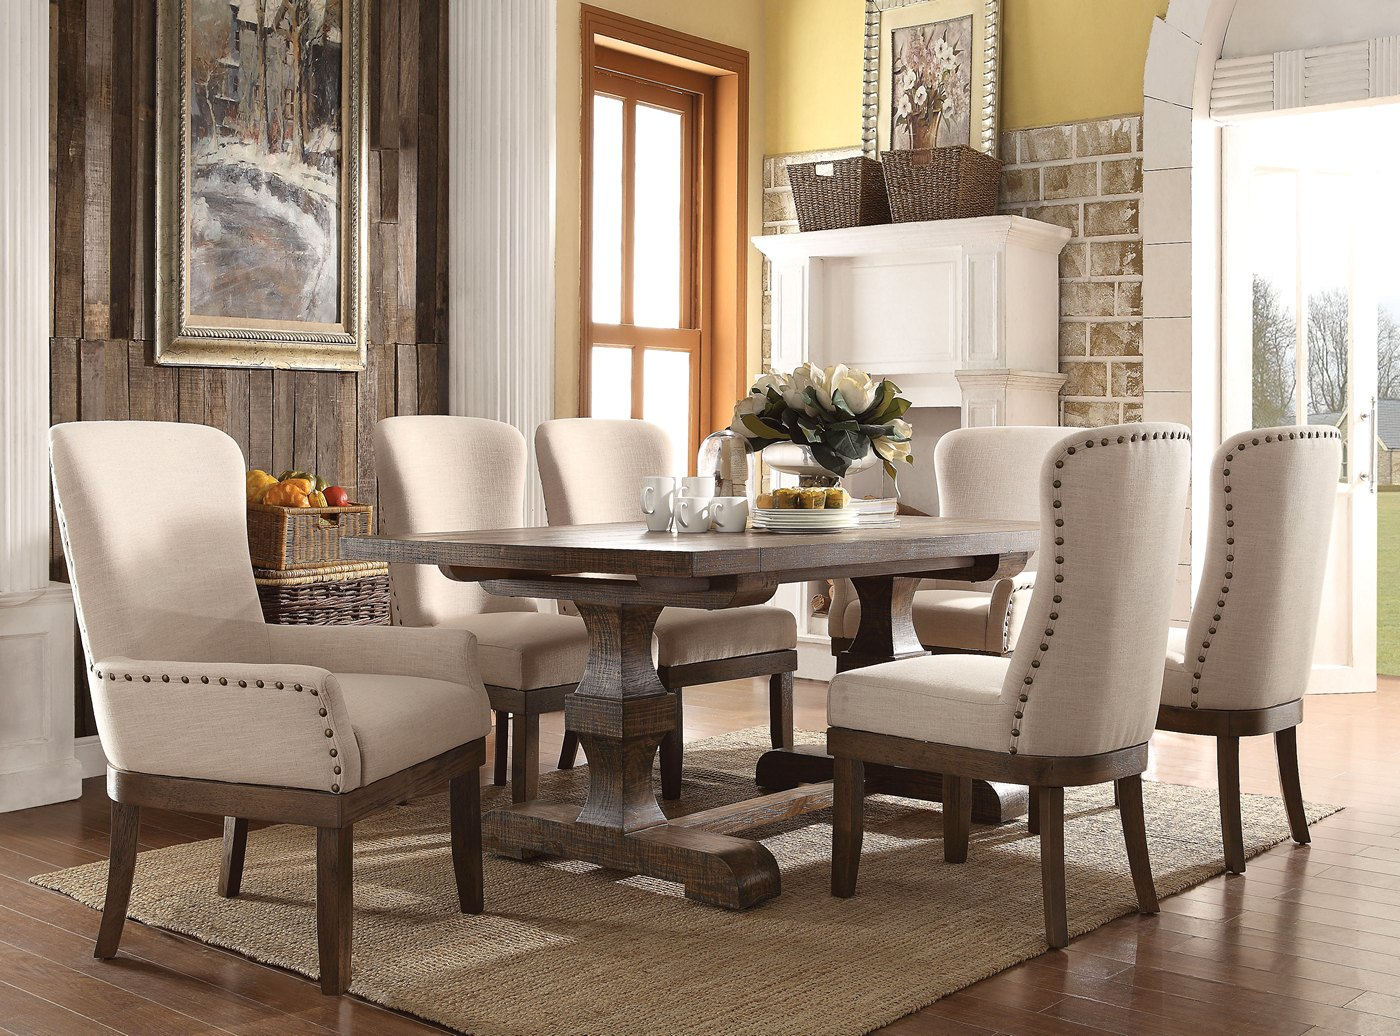 Leonel Rustic 5 Pc 72 Quot Trestle Dining Table Set In